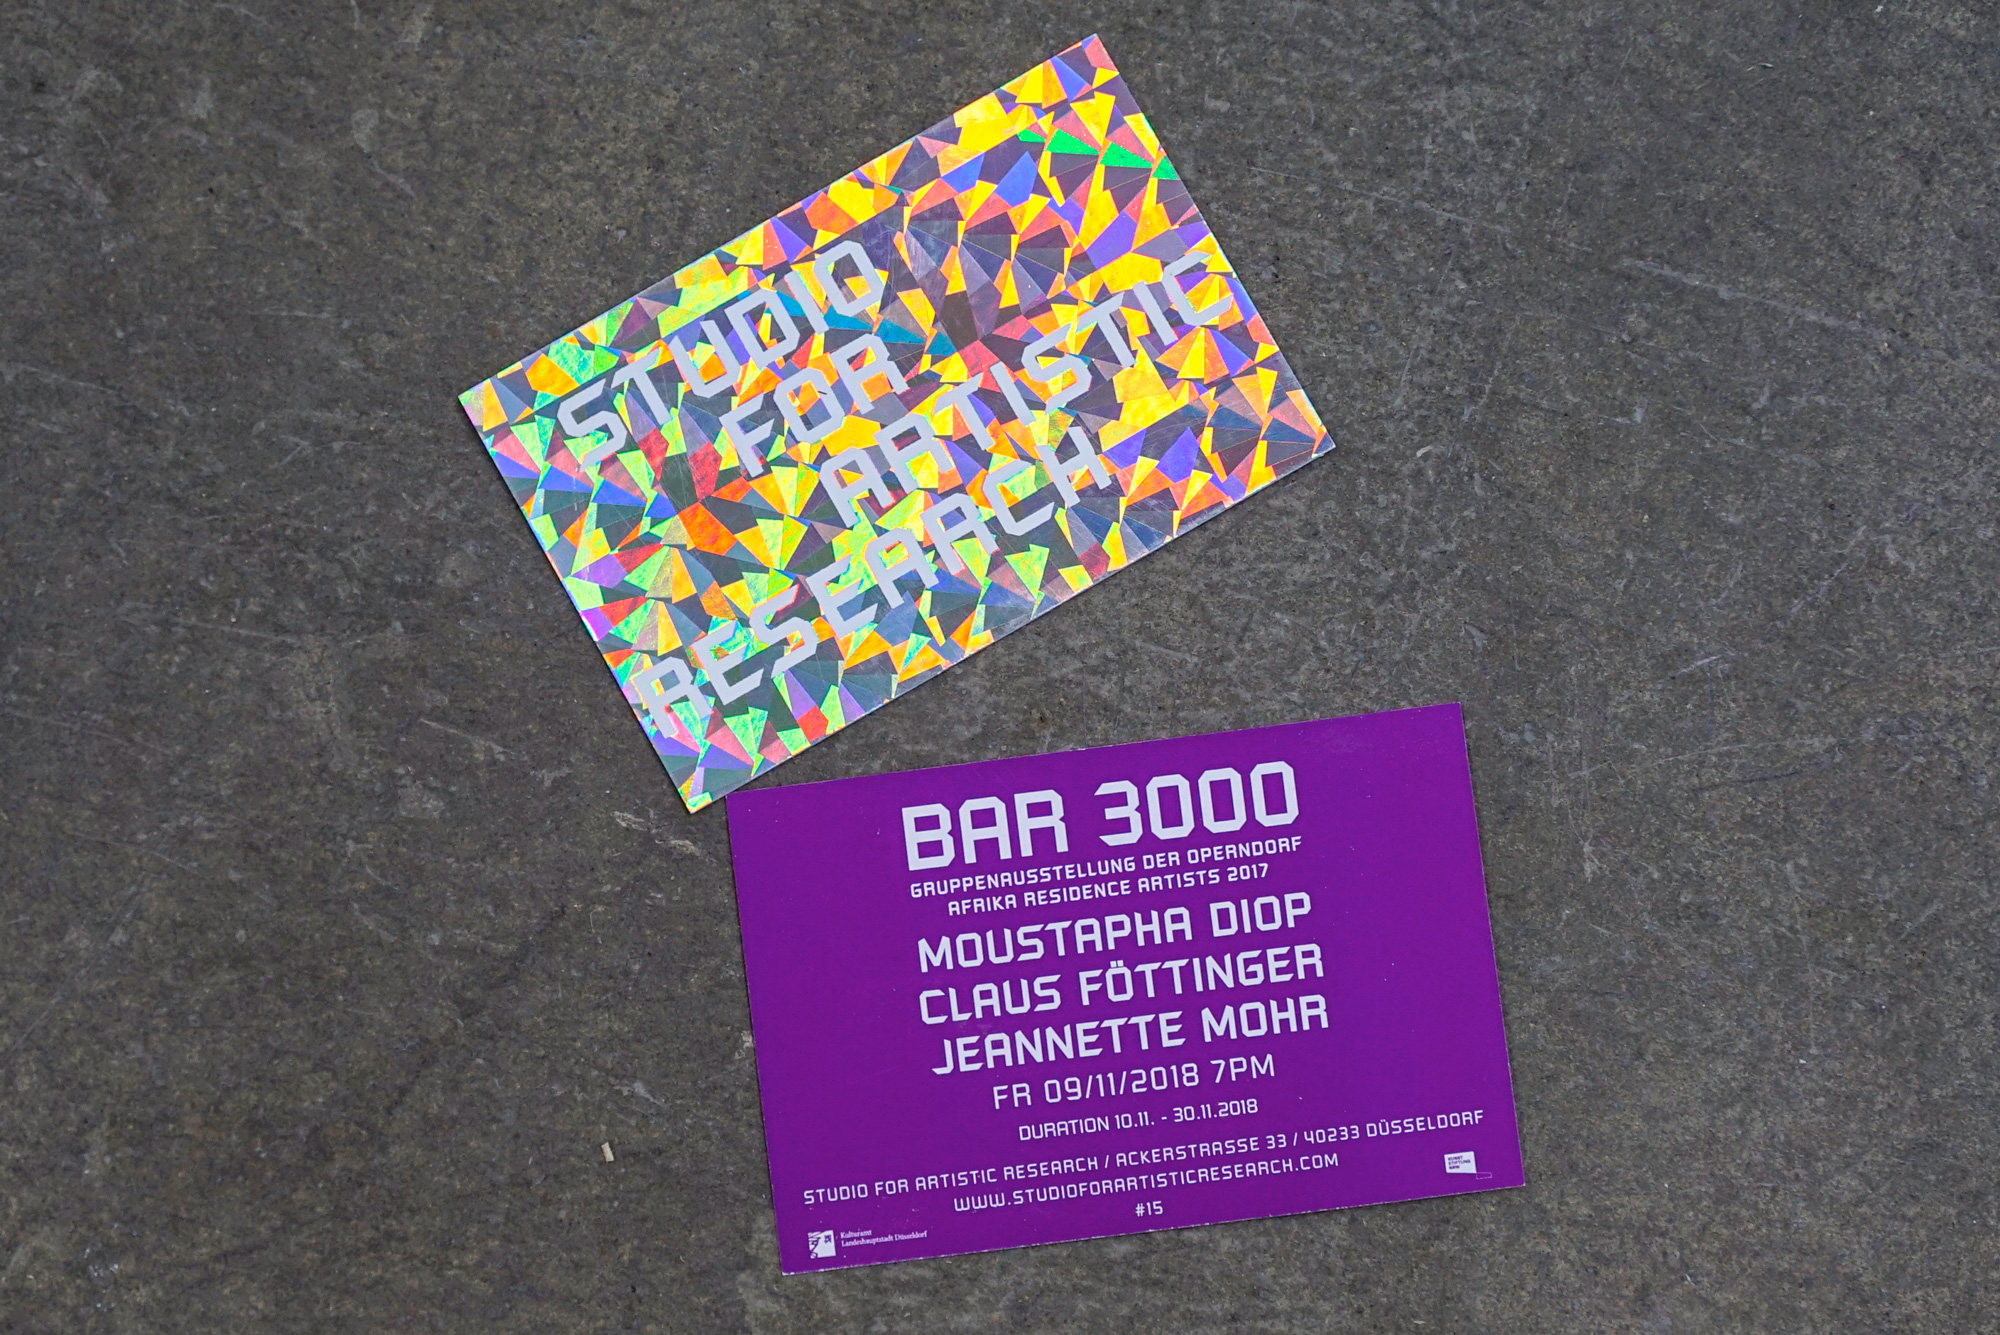 BAR 3000 - Flyer Studio For Artistic Research Claus Föttinger Moustapha Diop Jeannette Mohr Düsseldorf